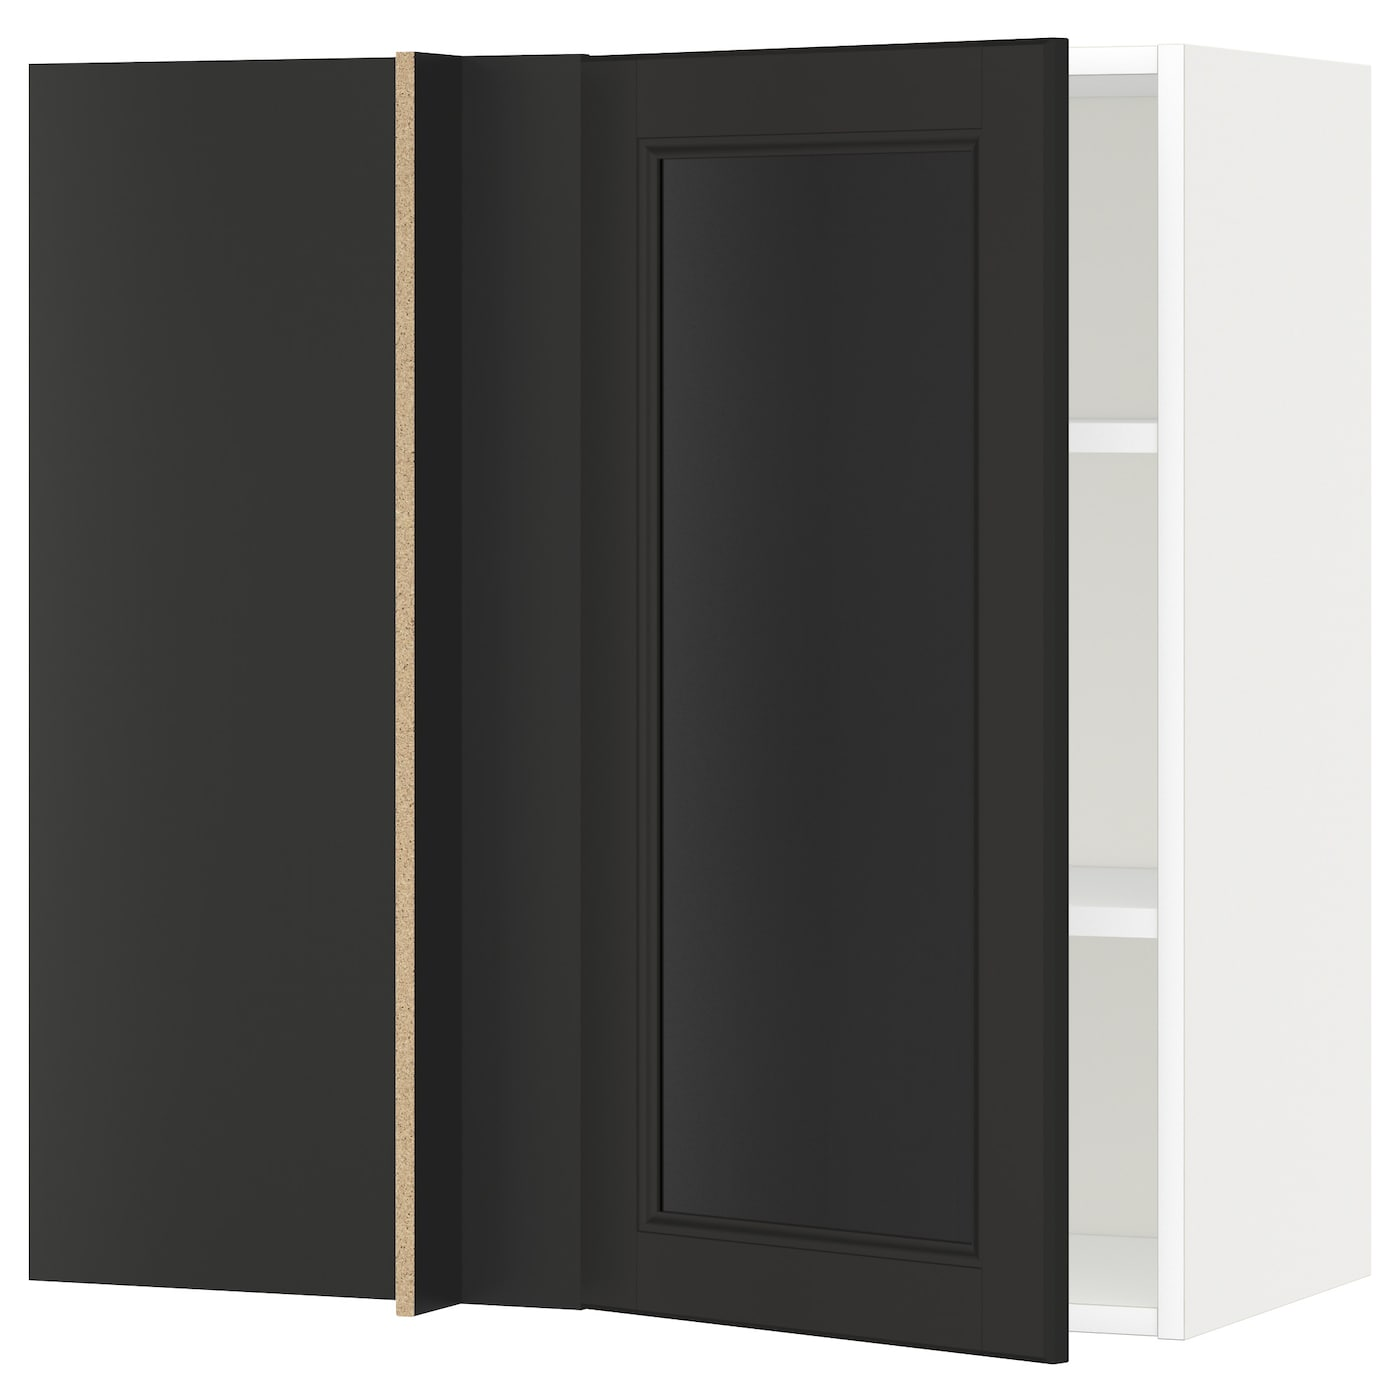 Metod Corner Wall Cabinet With Shelves White Laxarby Black